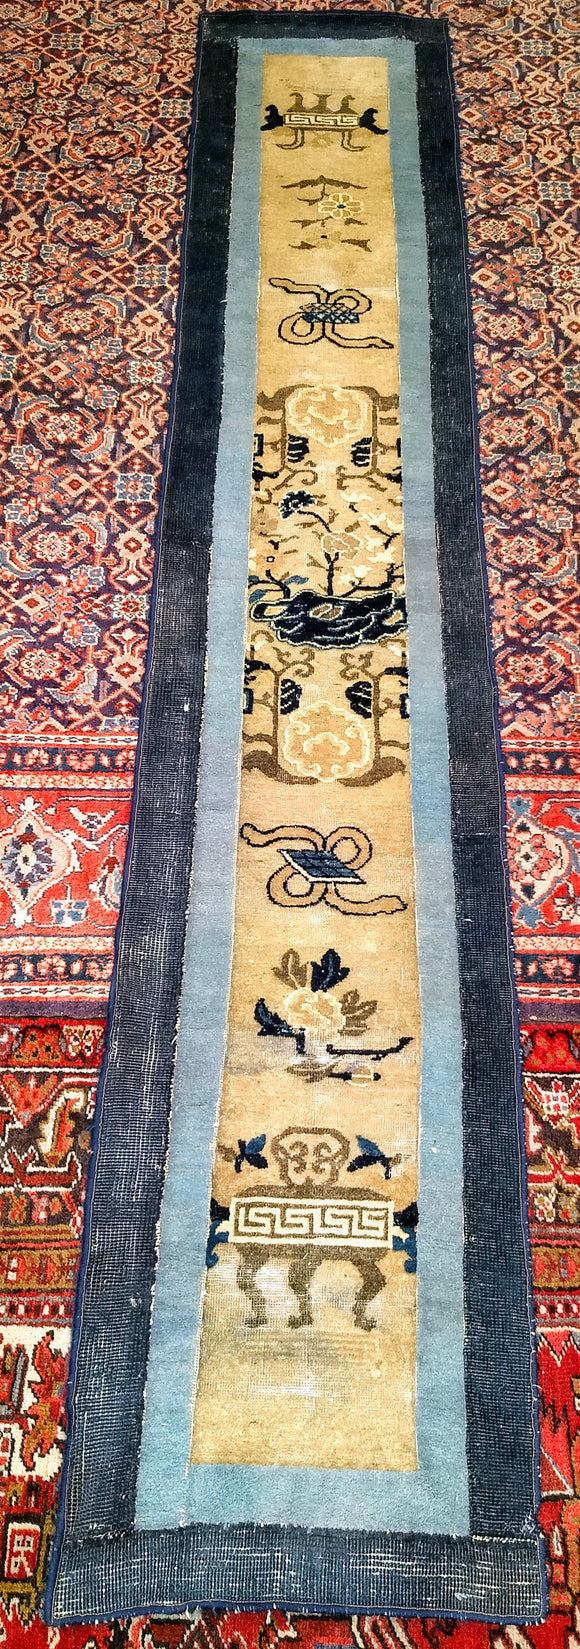 Beautiful Chinese Peking runner from the late 1800s. A number of traditional Chinese designs are set in a column in the cream/straw color field.  The borders in this Chinese Peking rug are dark and light colors that frame beautifully the design in this antique runner.